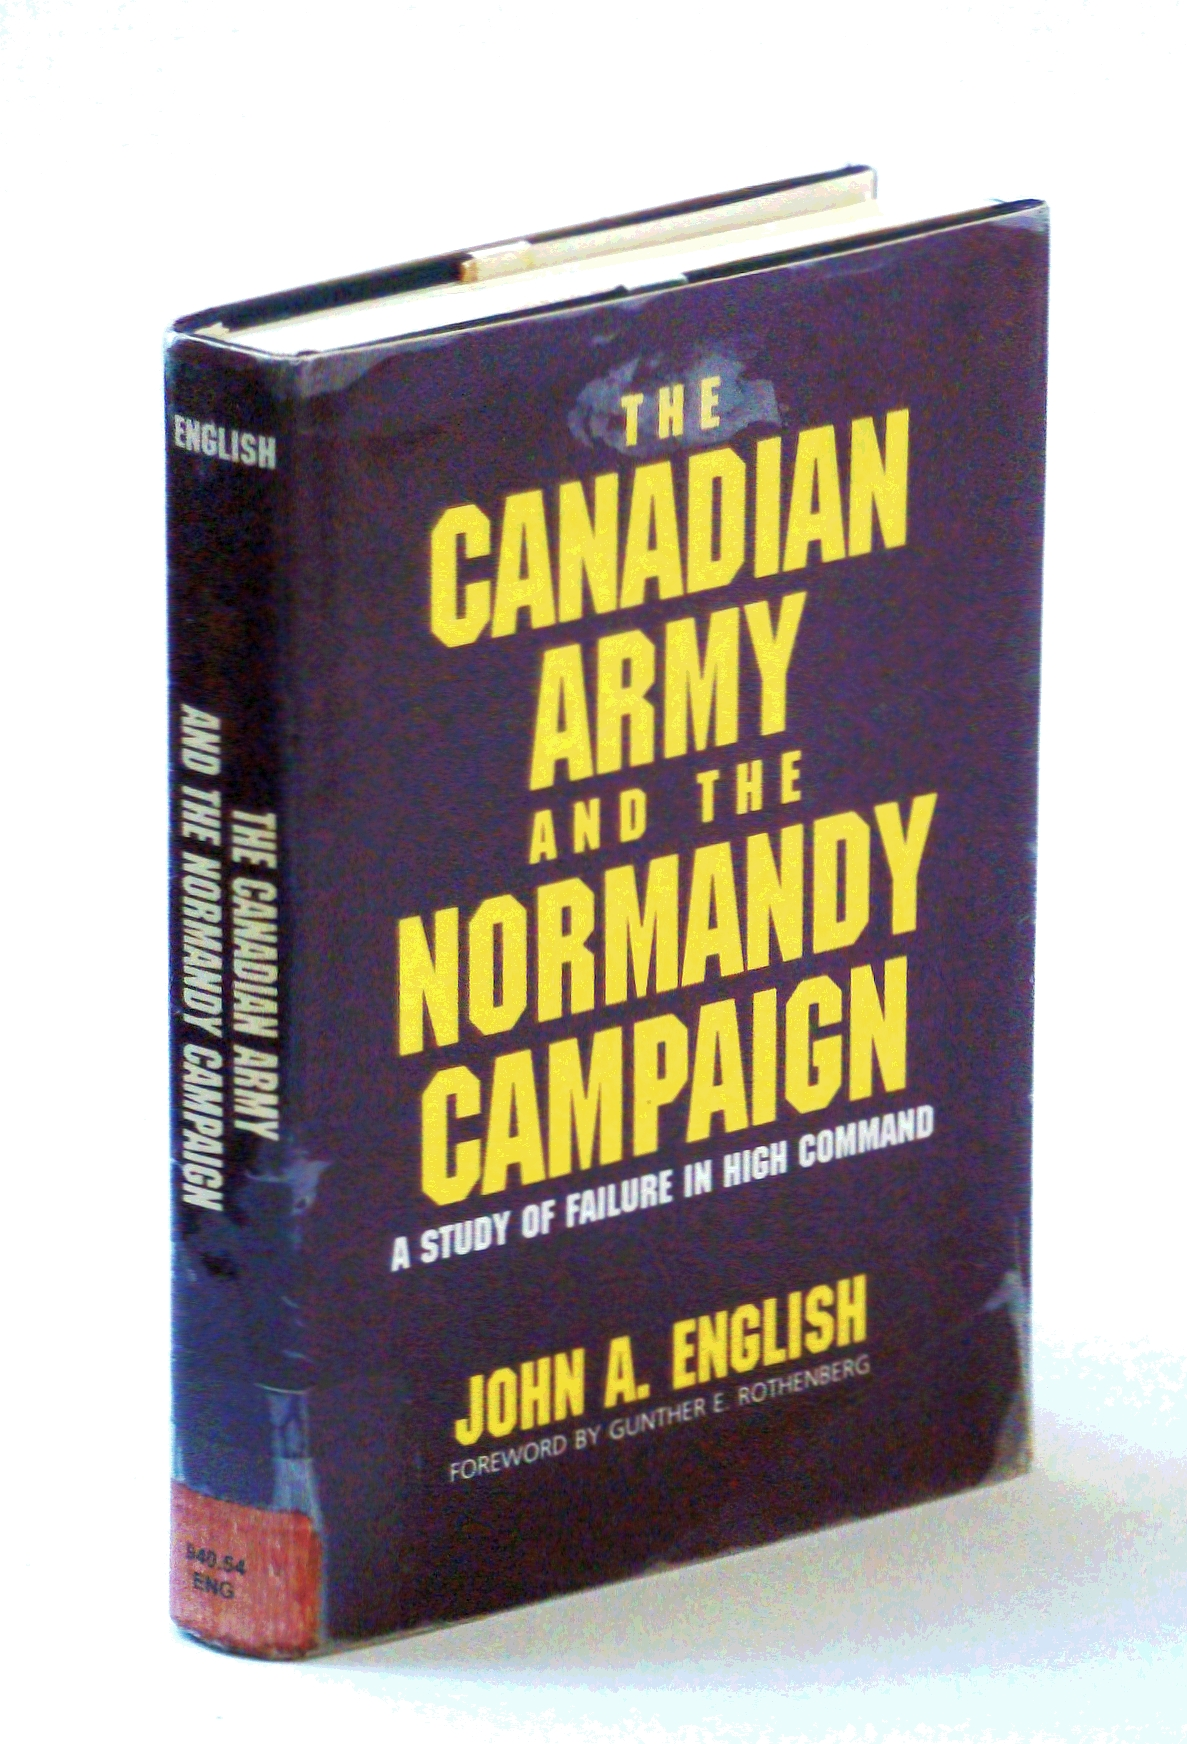 Image for The Canadian Army and the Normandy Campaign: A Study of Failure in High Command